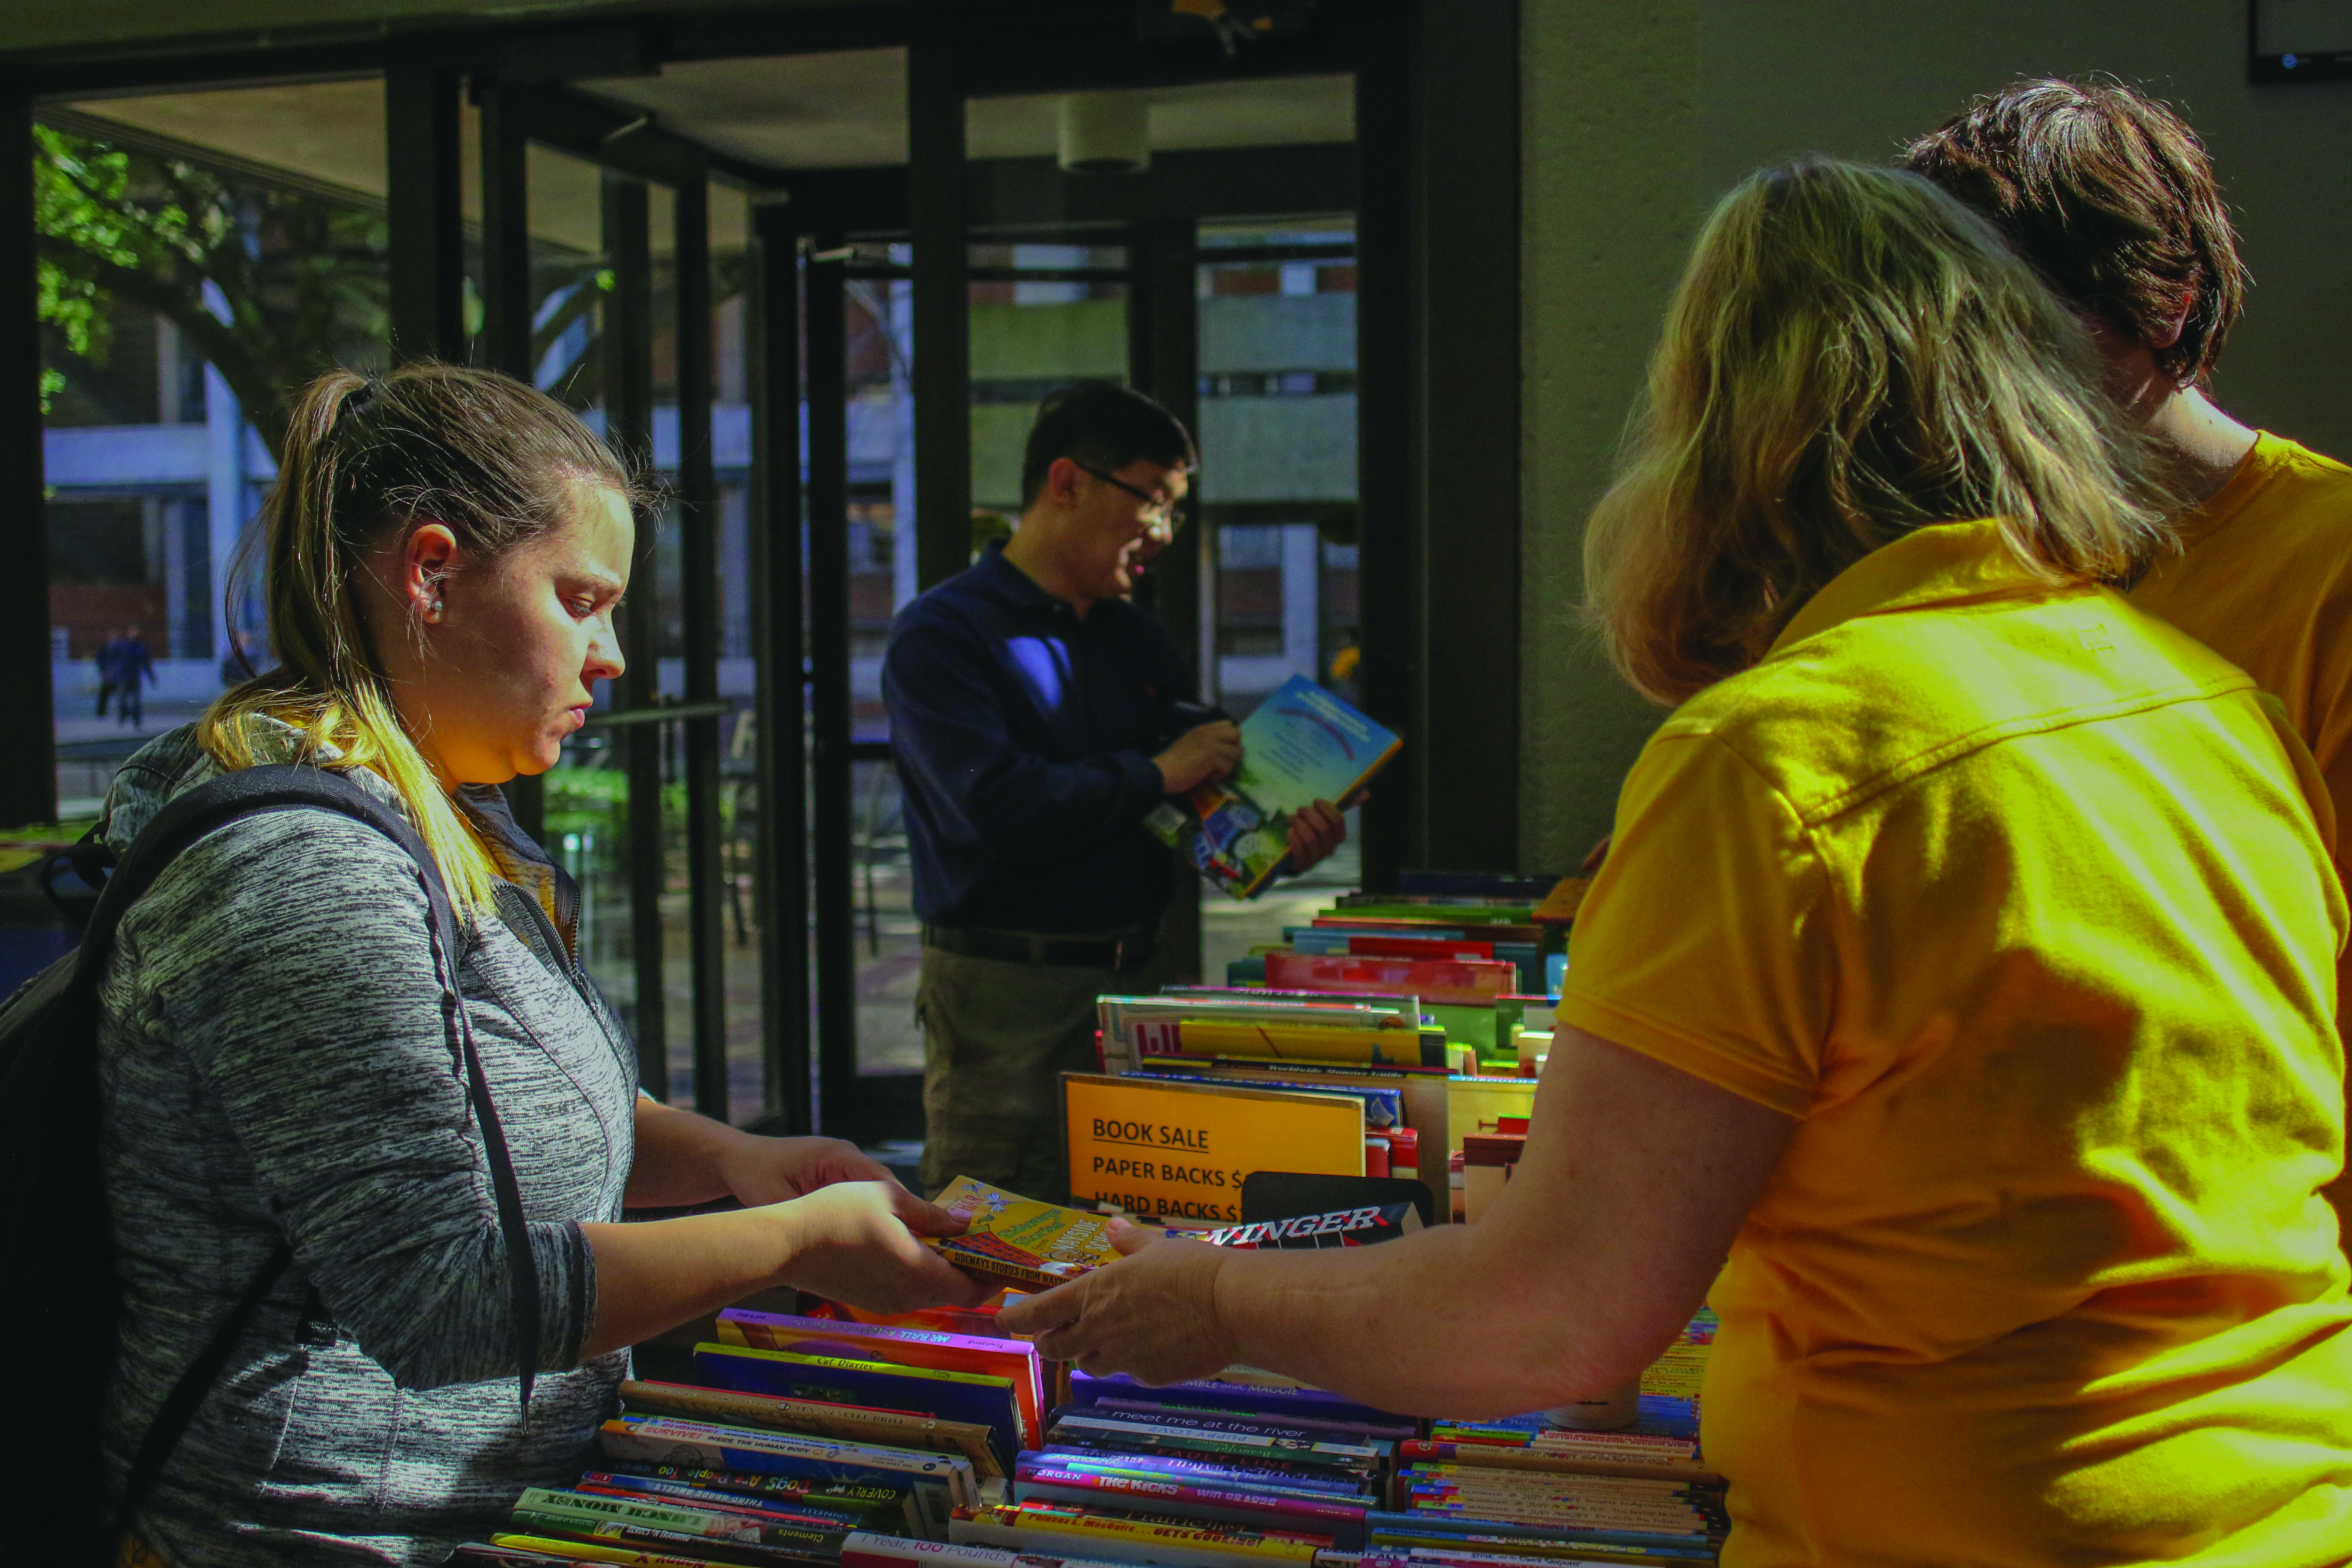 USM groups combat illiteracy with book sale